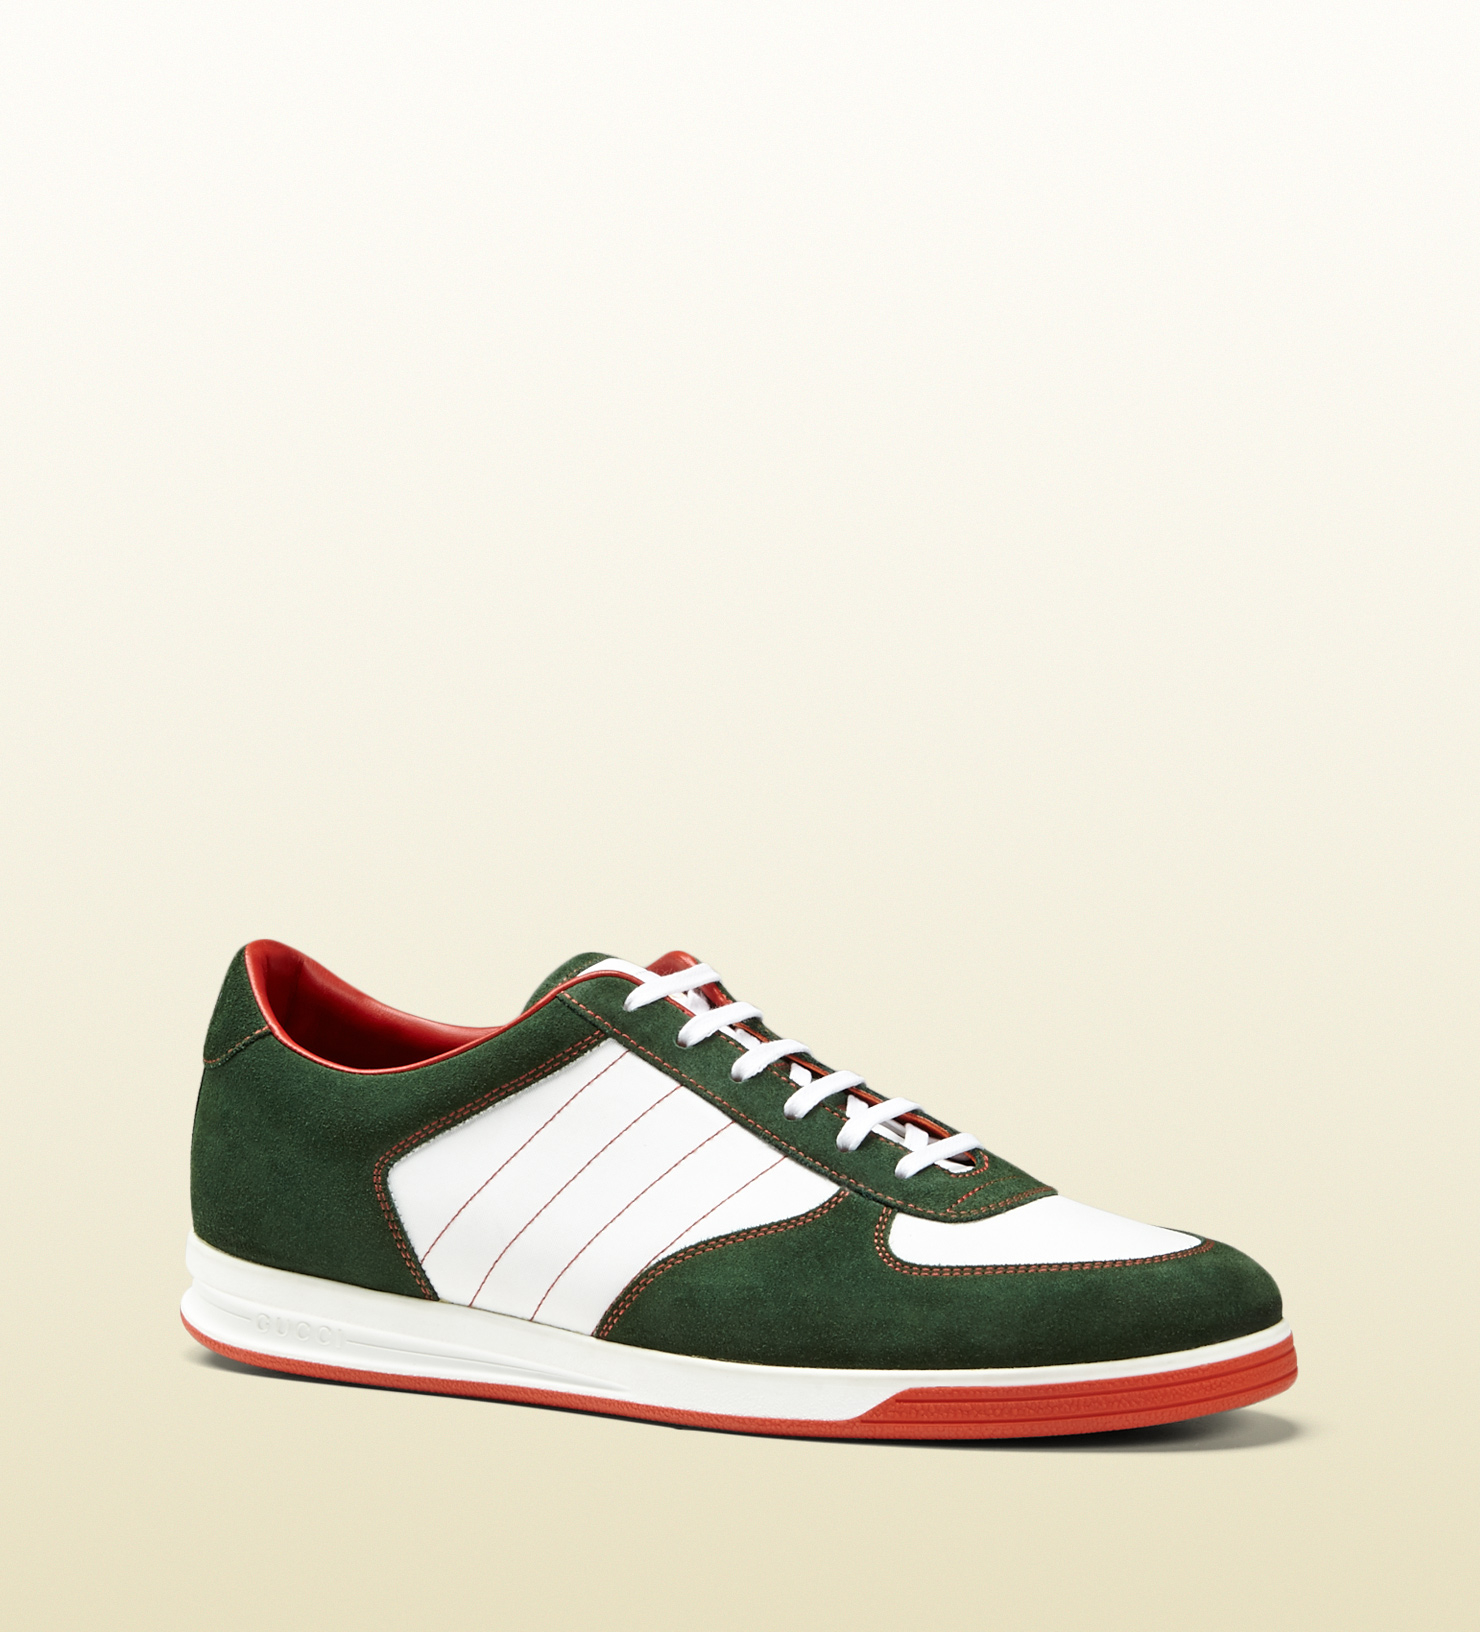 65451a24d05 Lyst - Gucci 1984 Low Top Sneaker In Suede in Green for Men